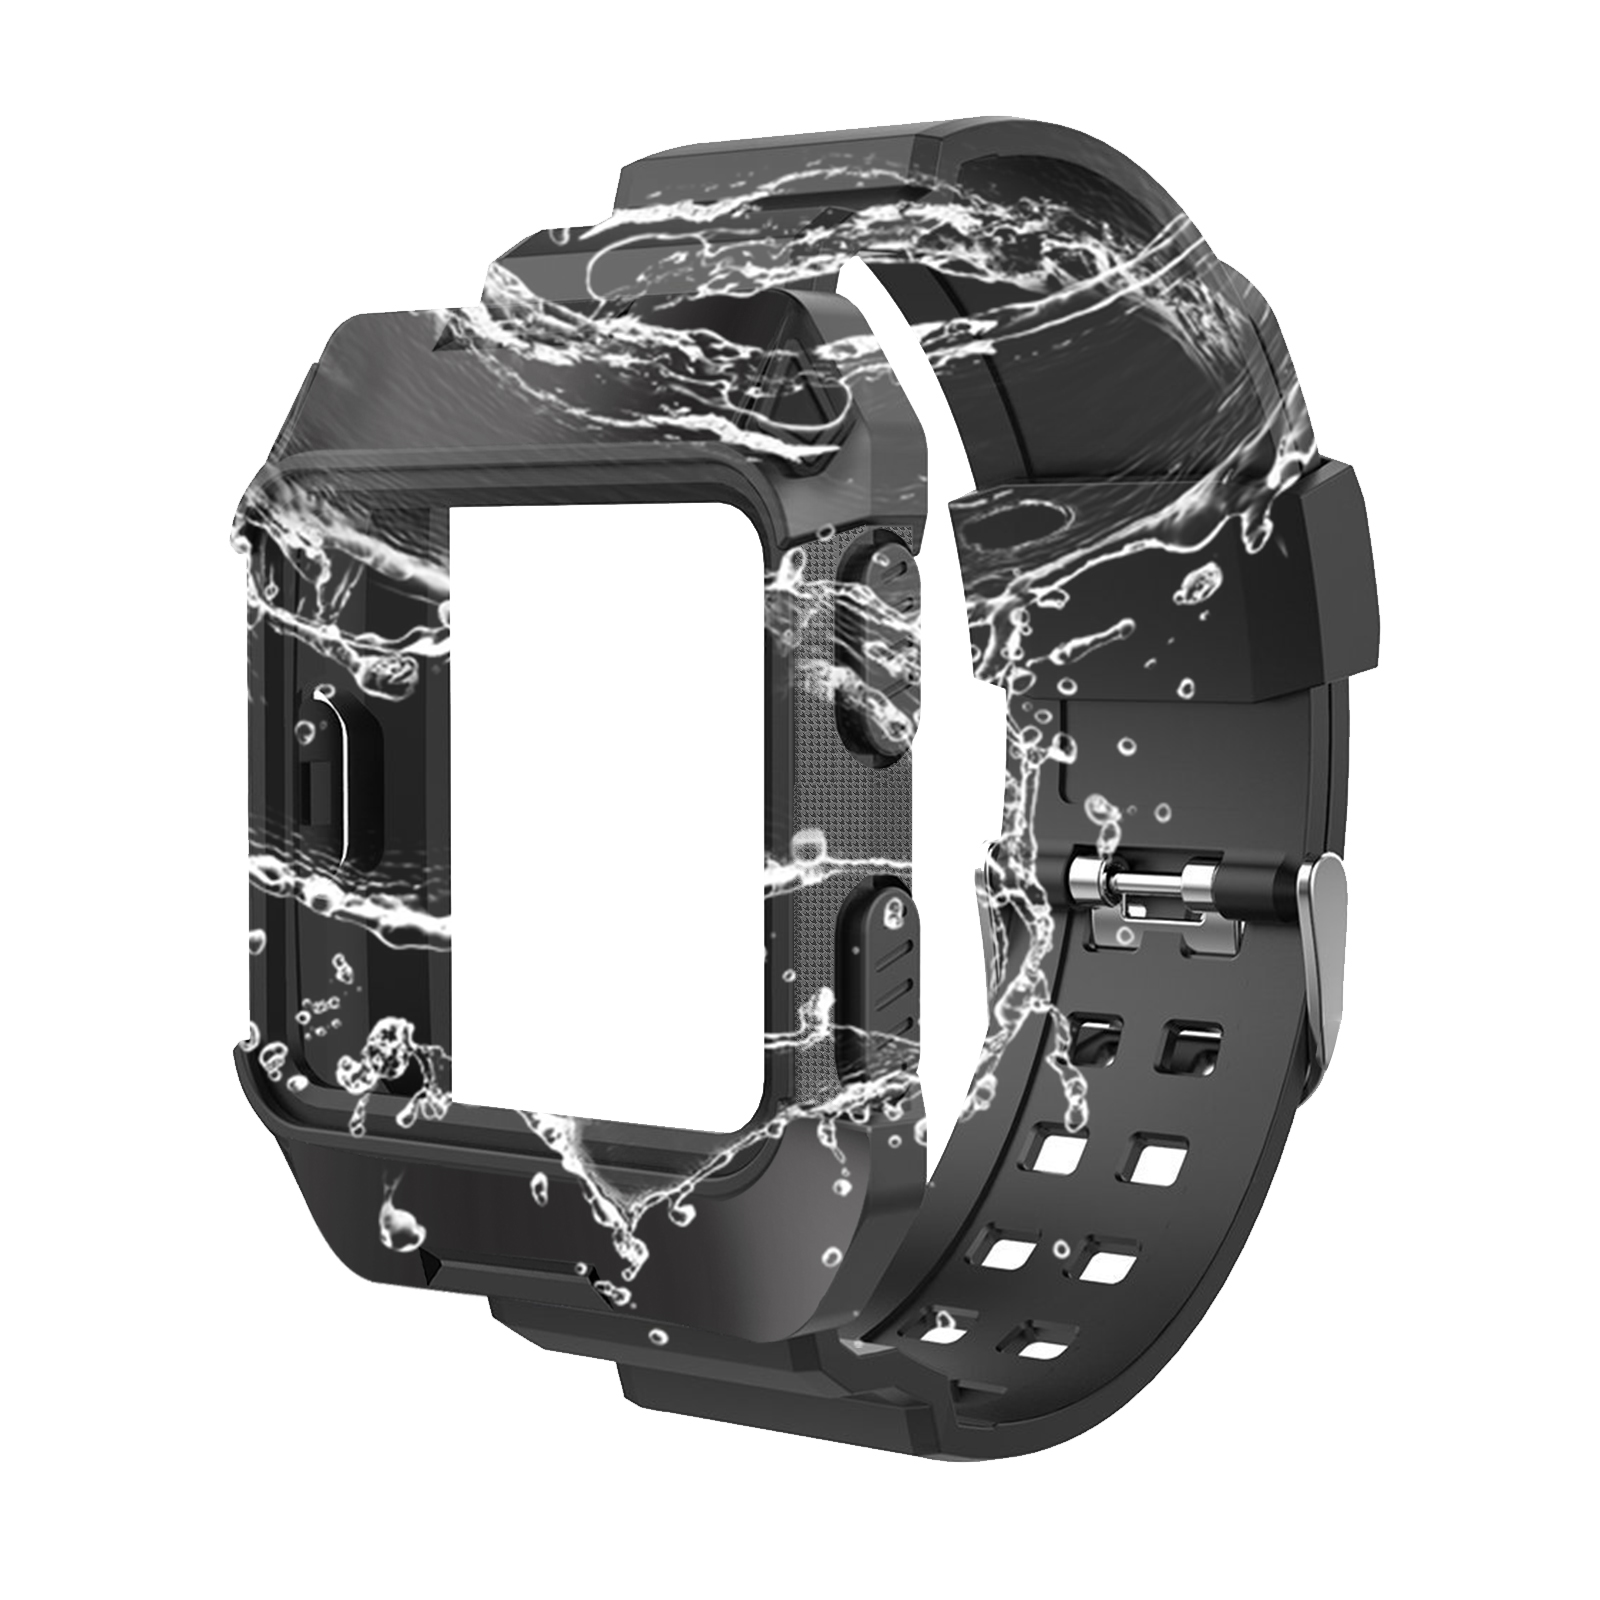 Black-Armor-For-Fitbit-Ionic-Rugged-Band-Protective-Case-Large-Wristband-Strap thumbnail 8